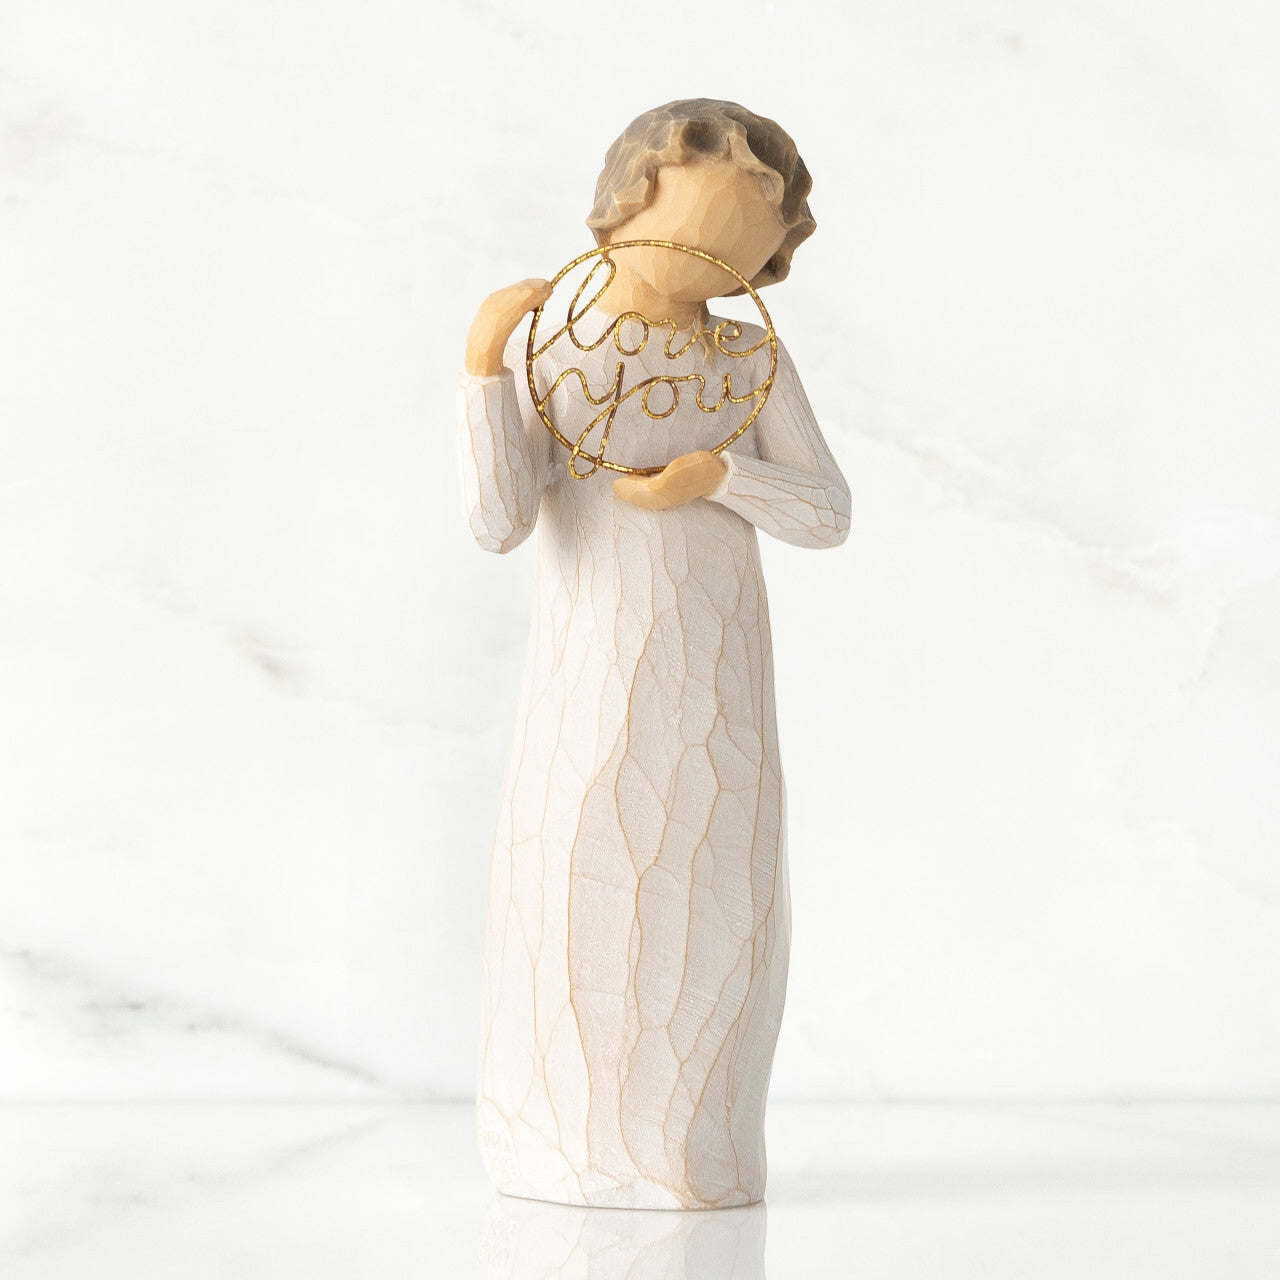 Love you - Willow Tree Figurine